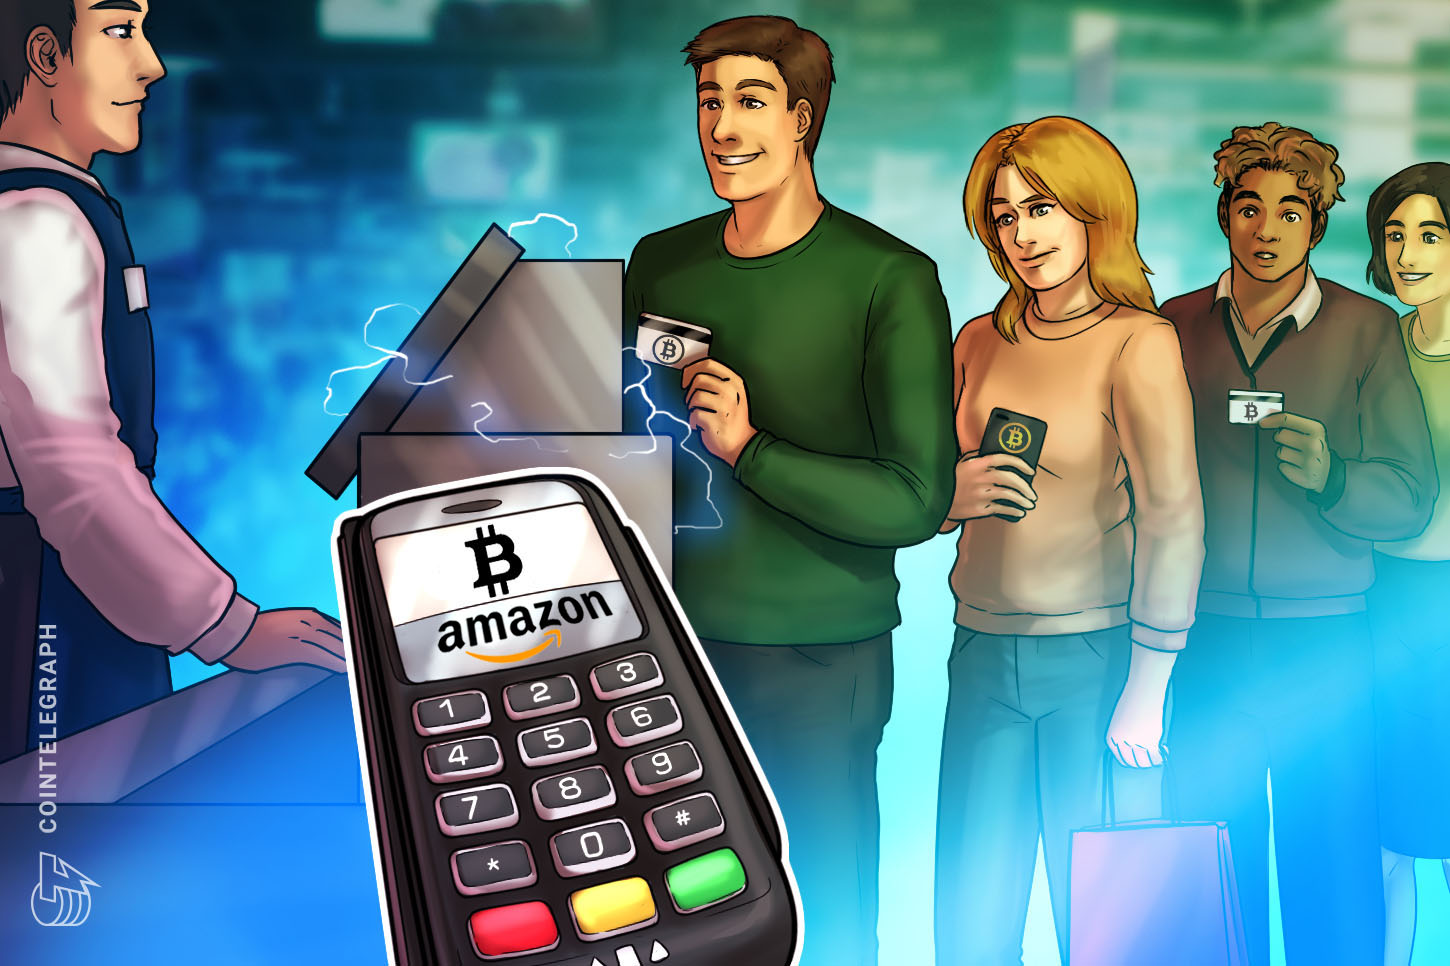 Amazon plans to accept Bitcoin payments this year, claims insider